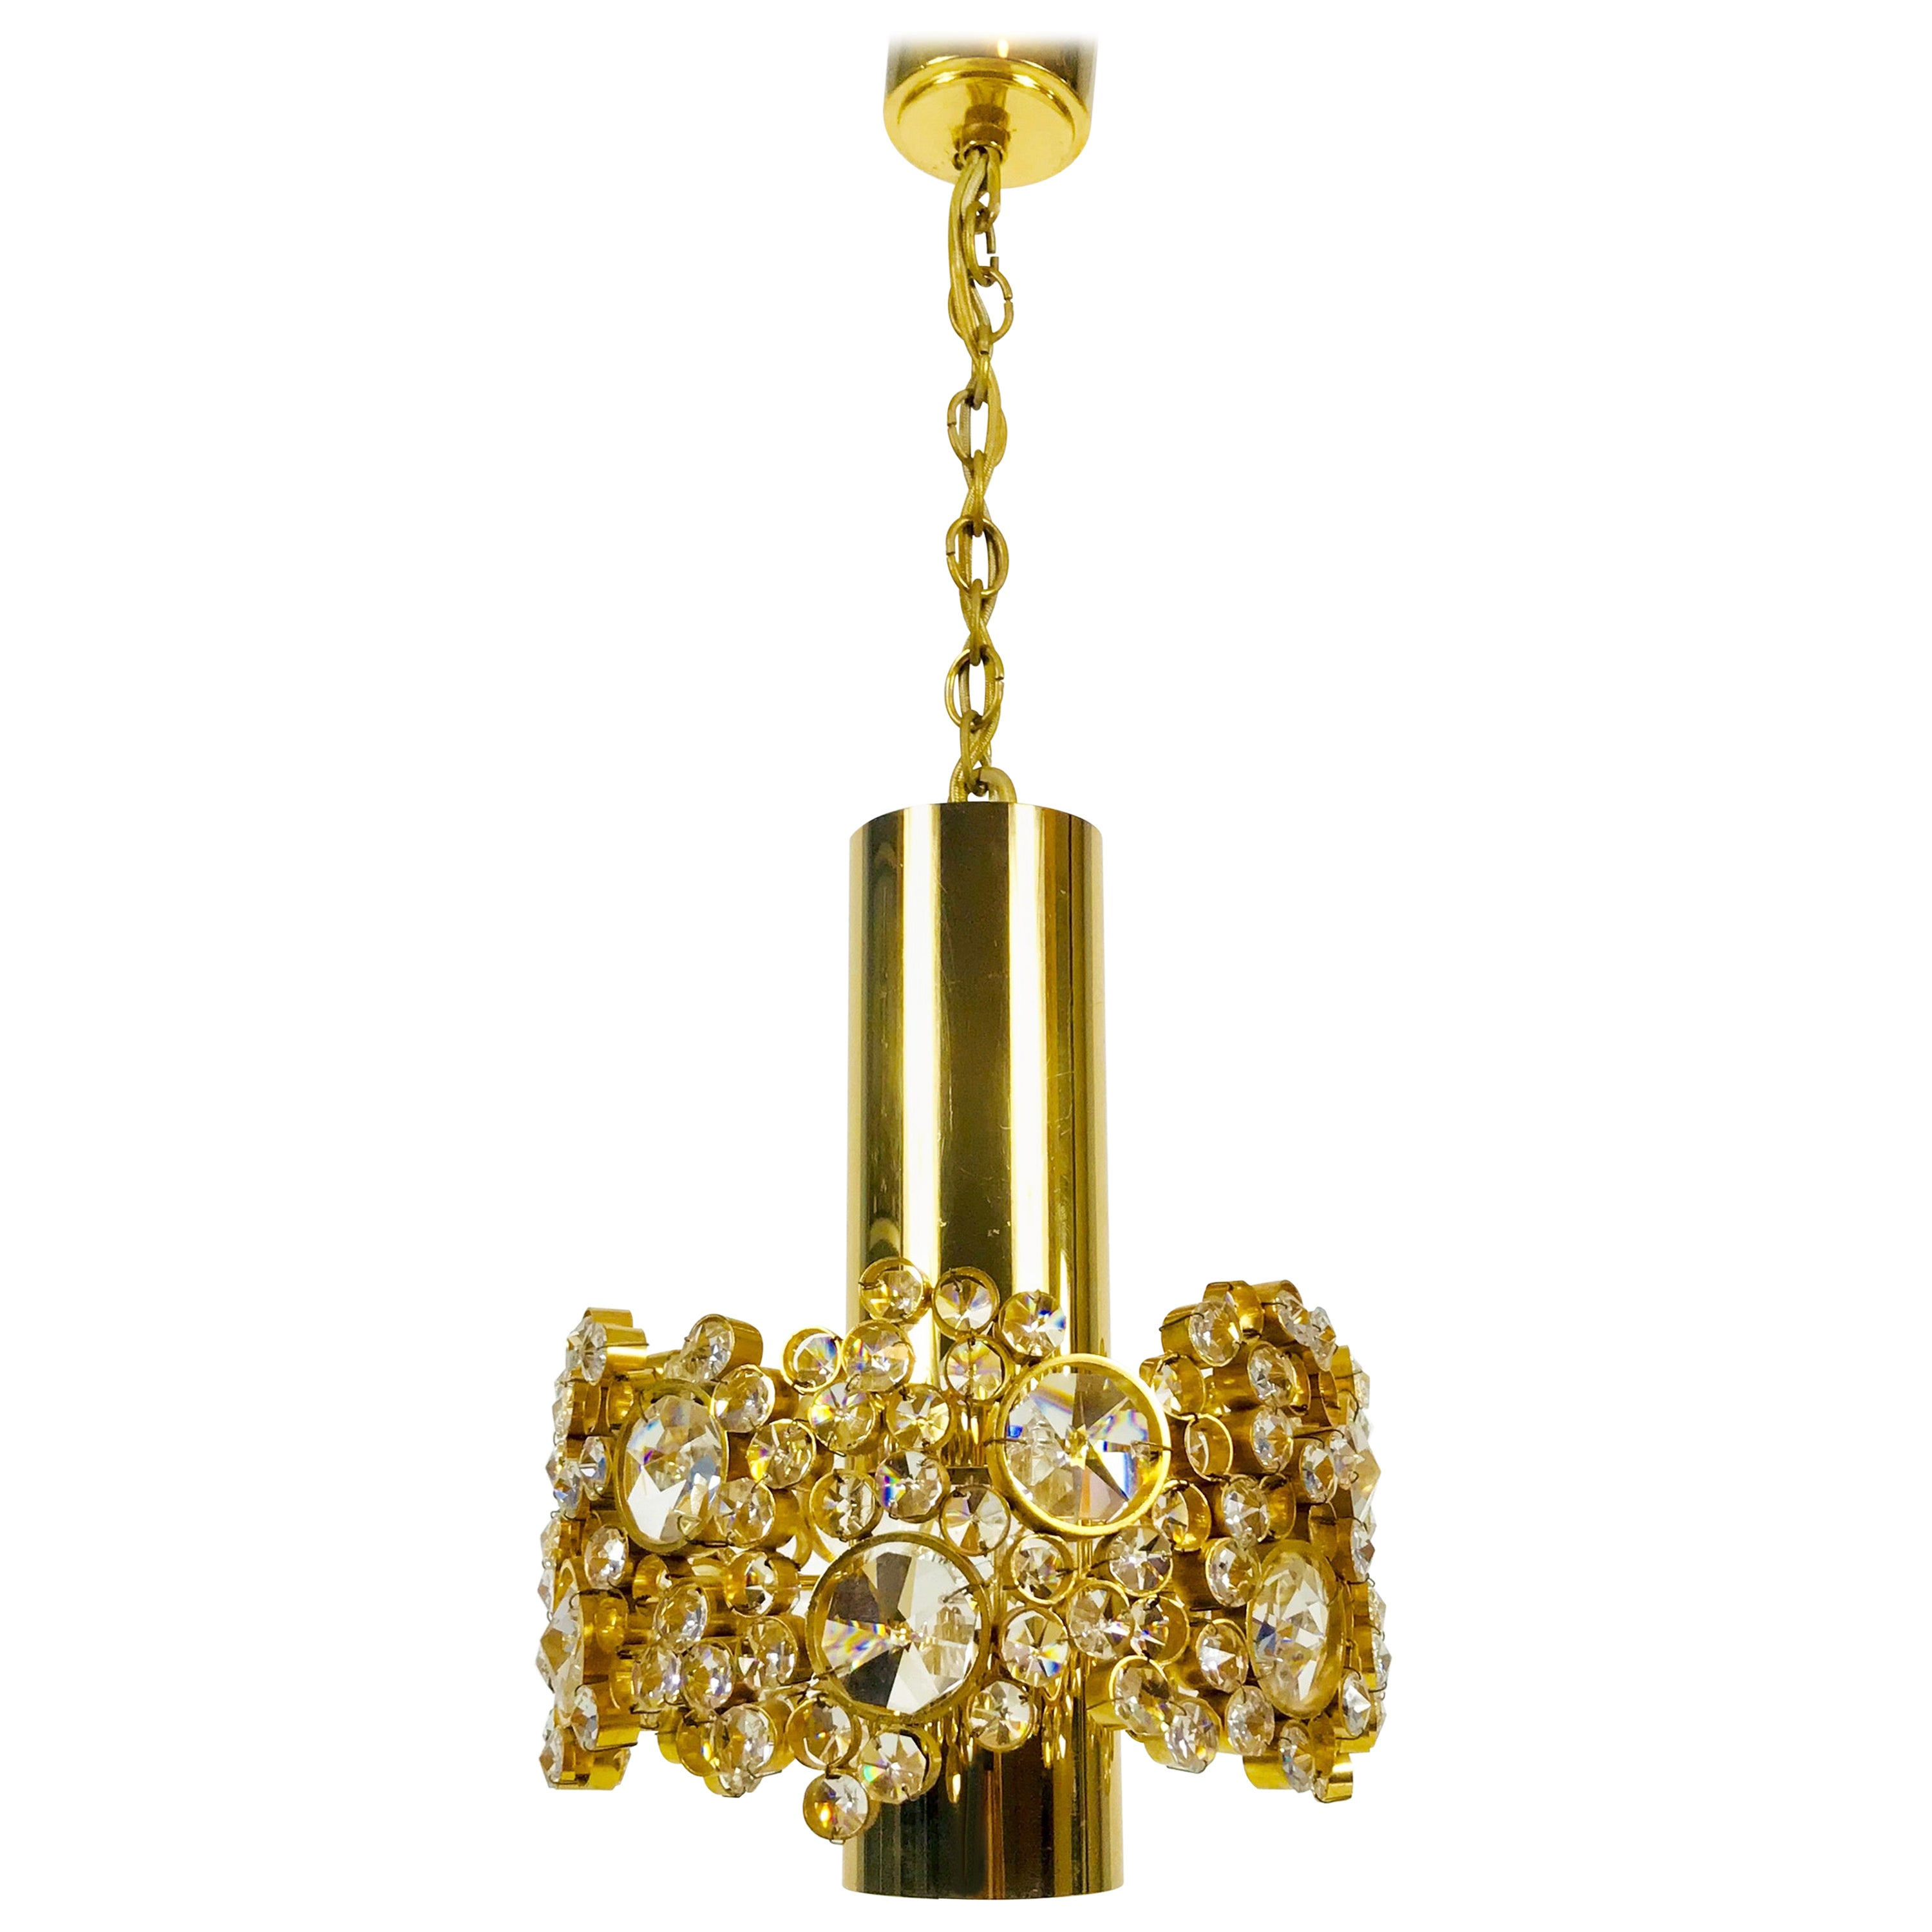 Gilt Brass and Crystal Glass Chandelier by Palwa, Germany, 1970s